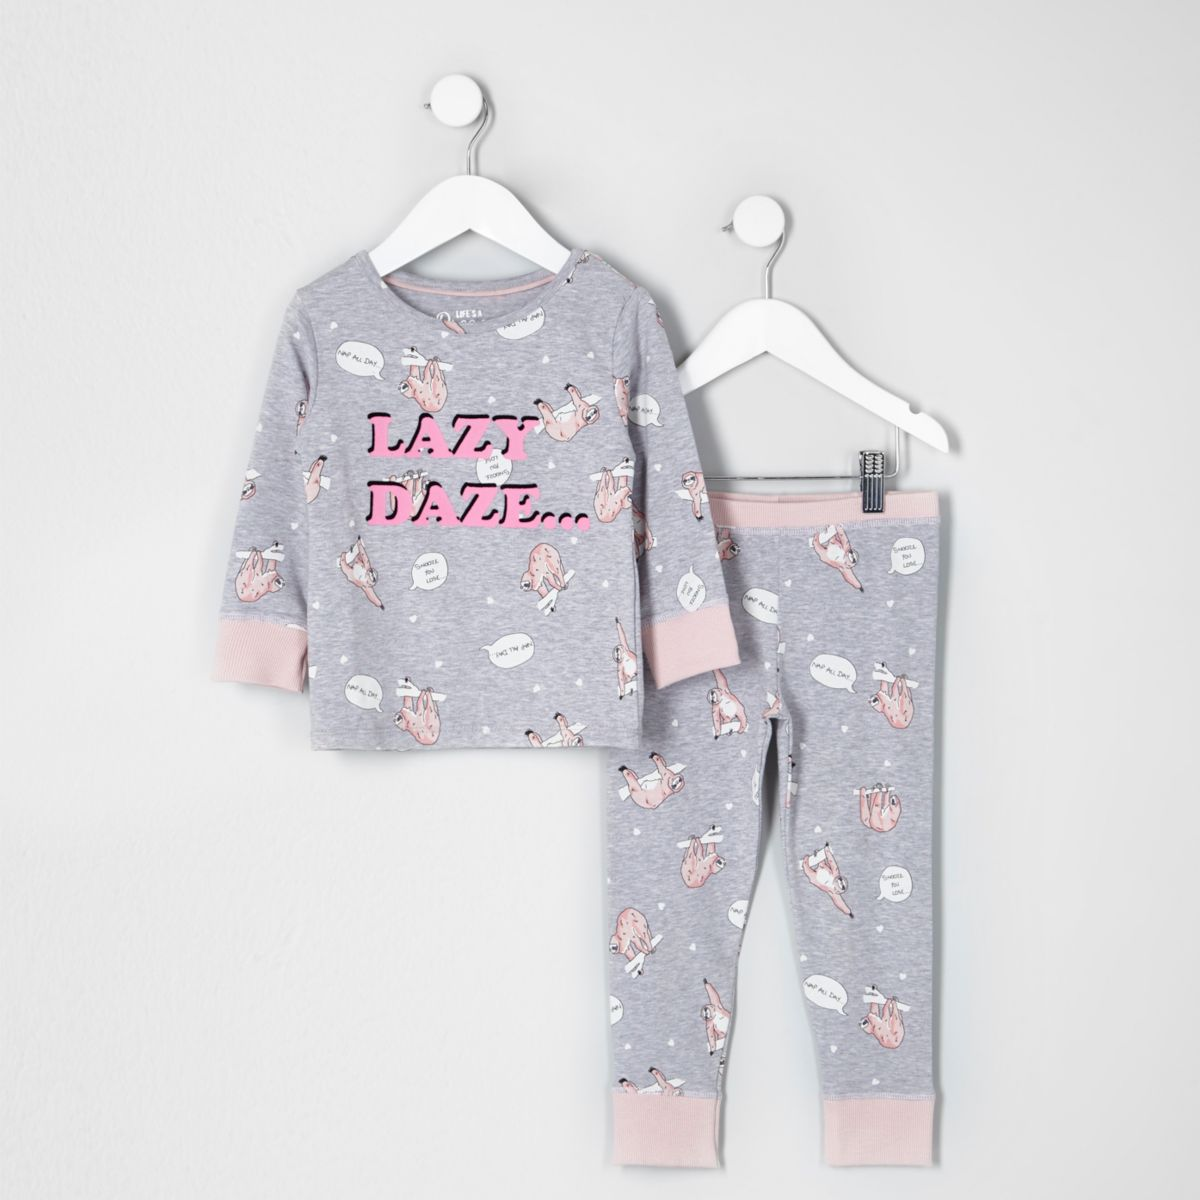 Mini girls grey 'lazy daze' print pajama set